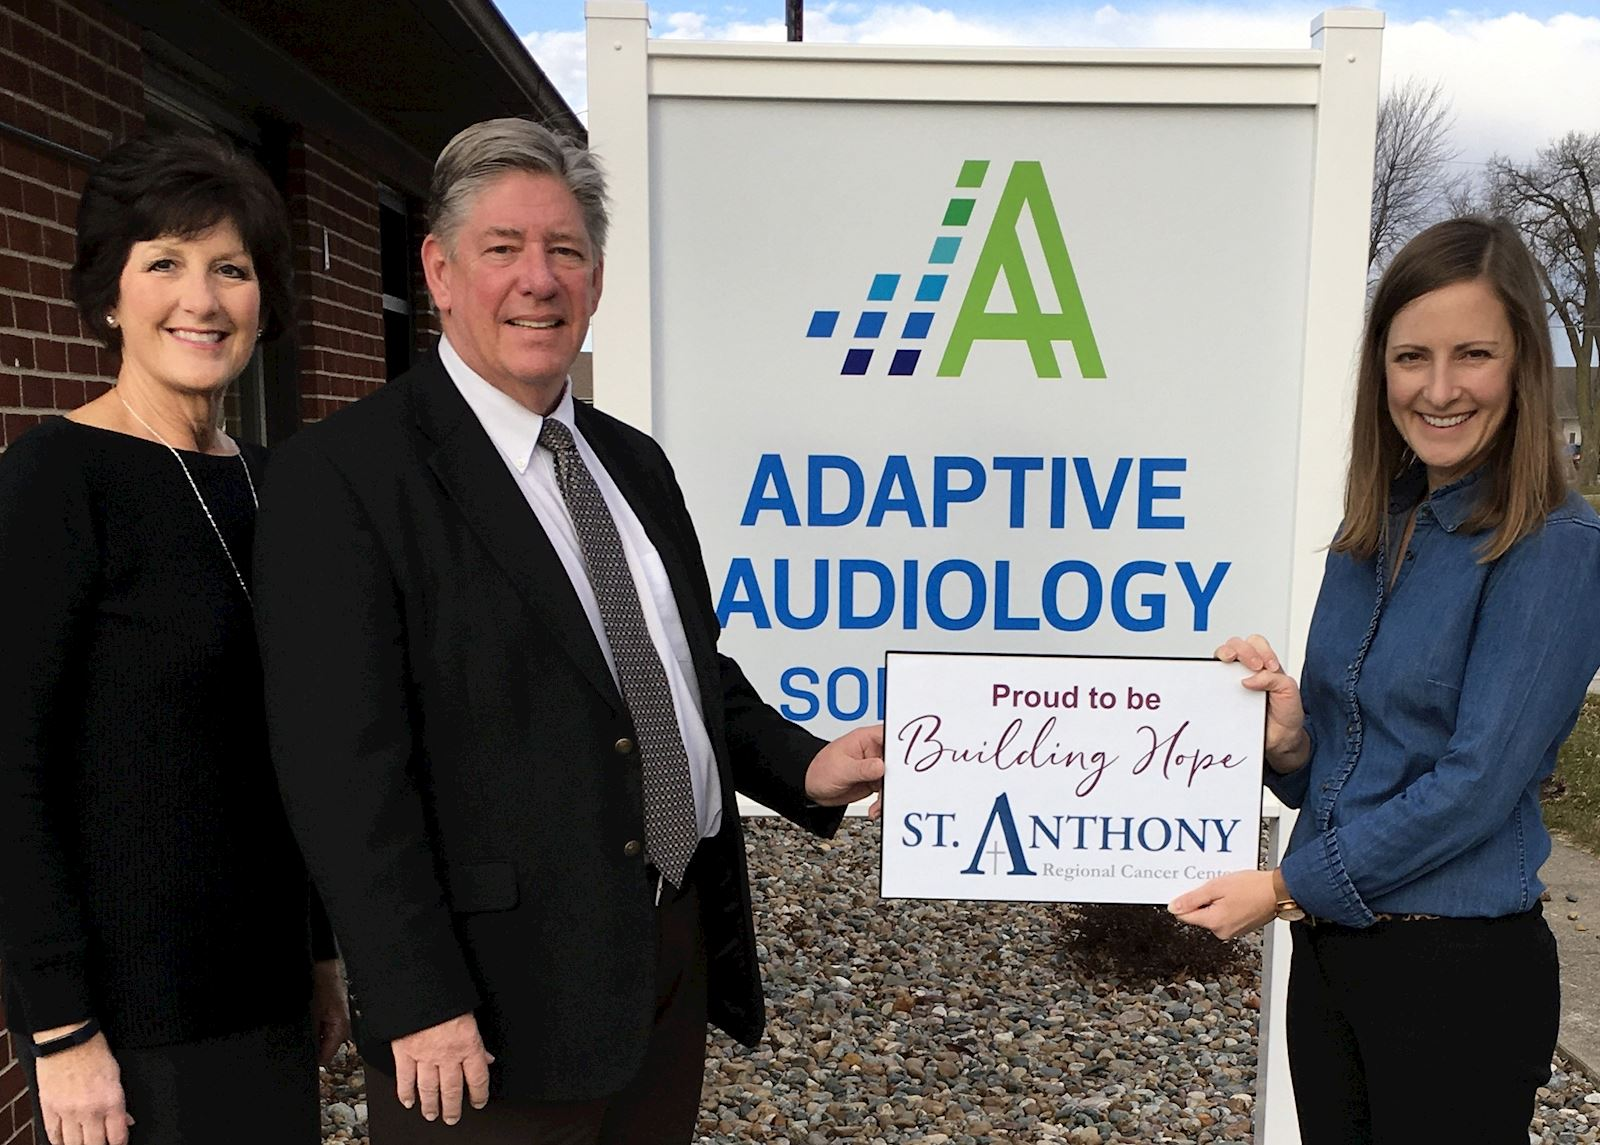 Adaptive Audiology